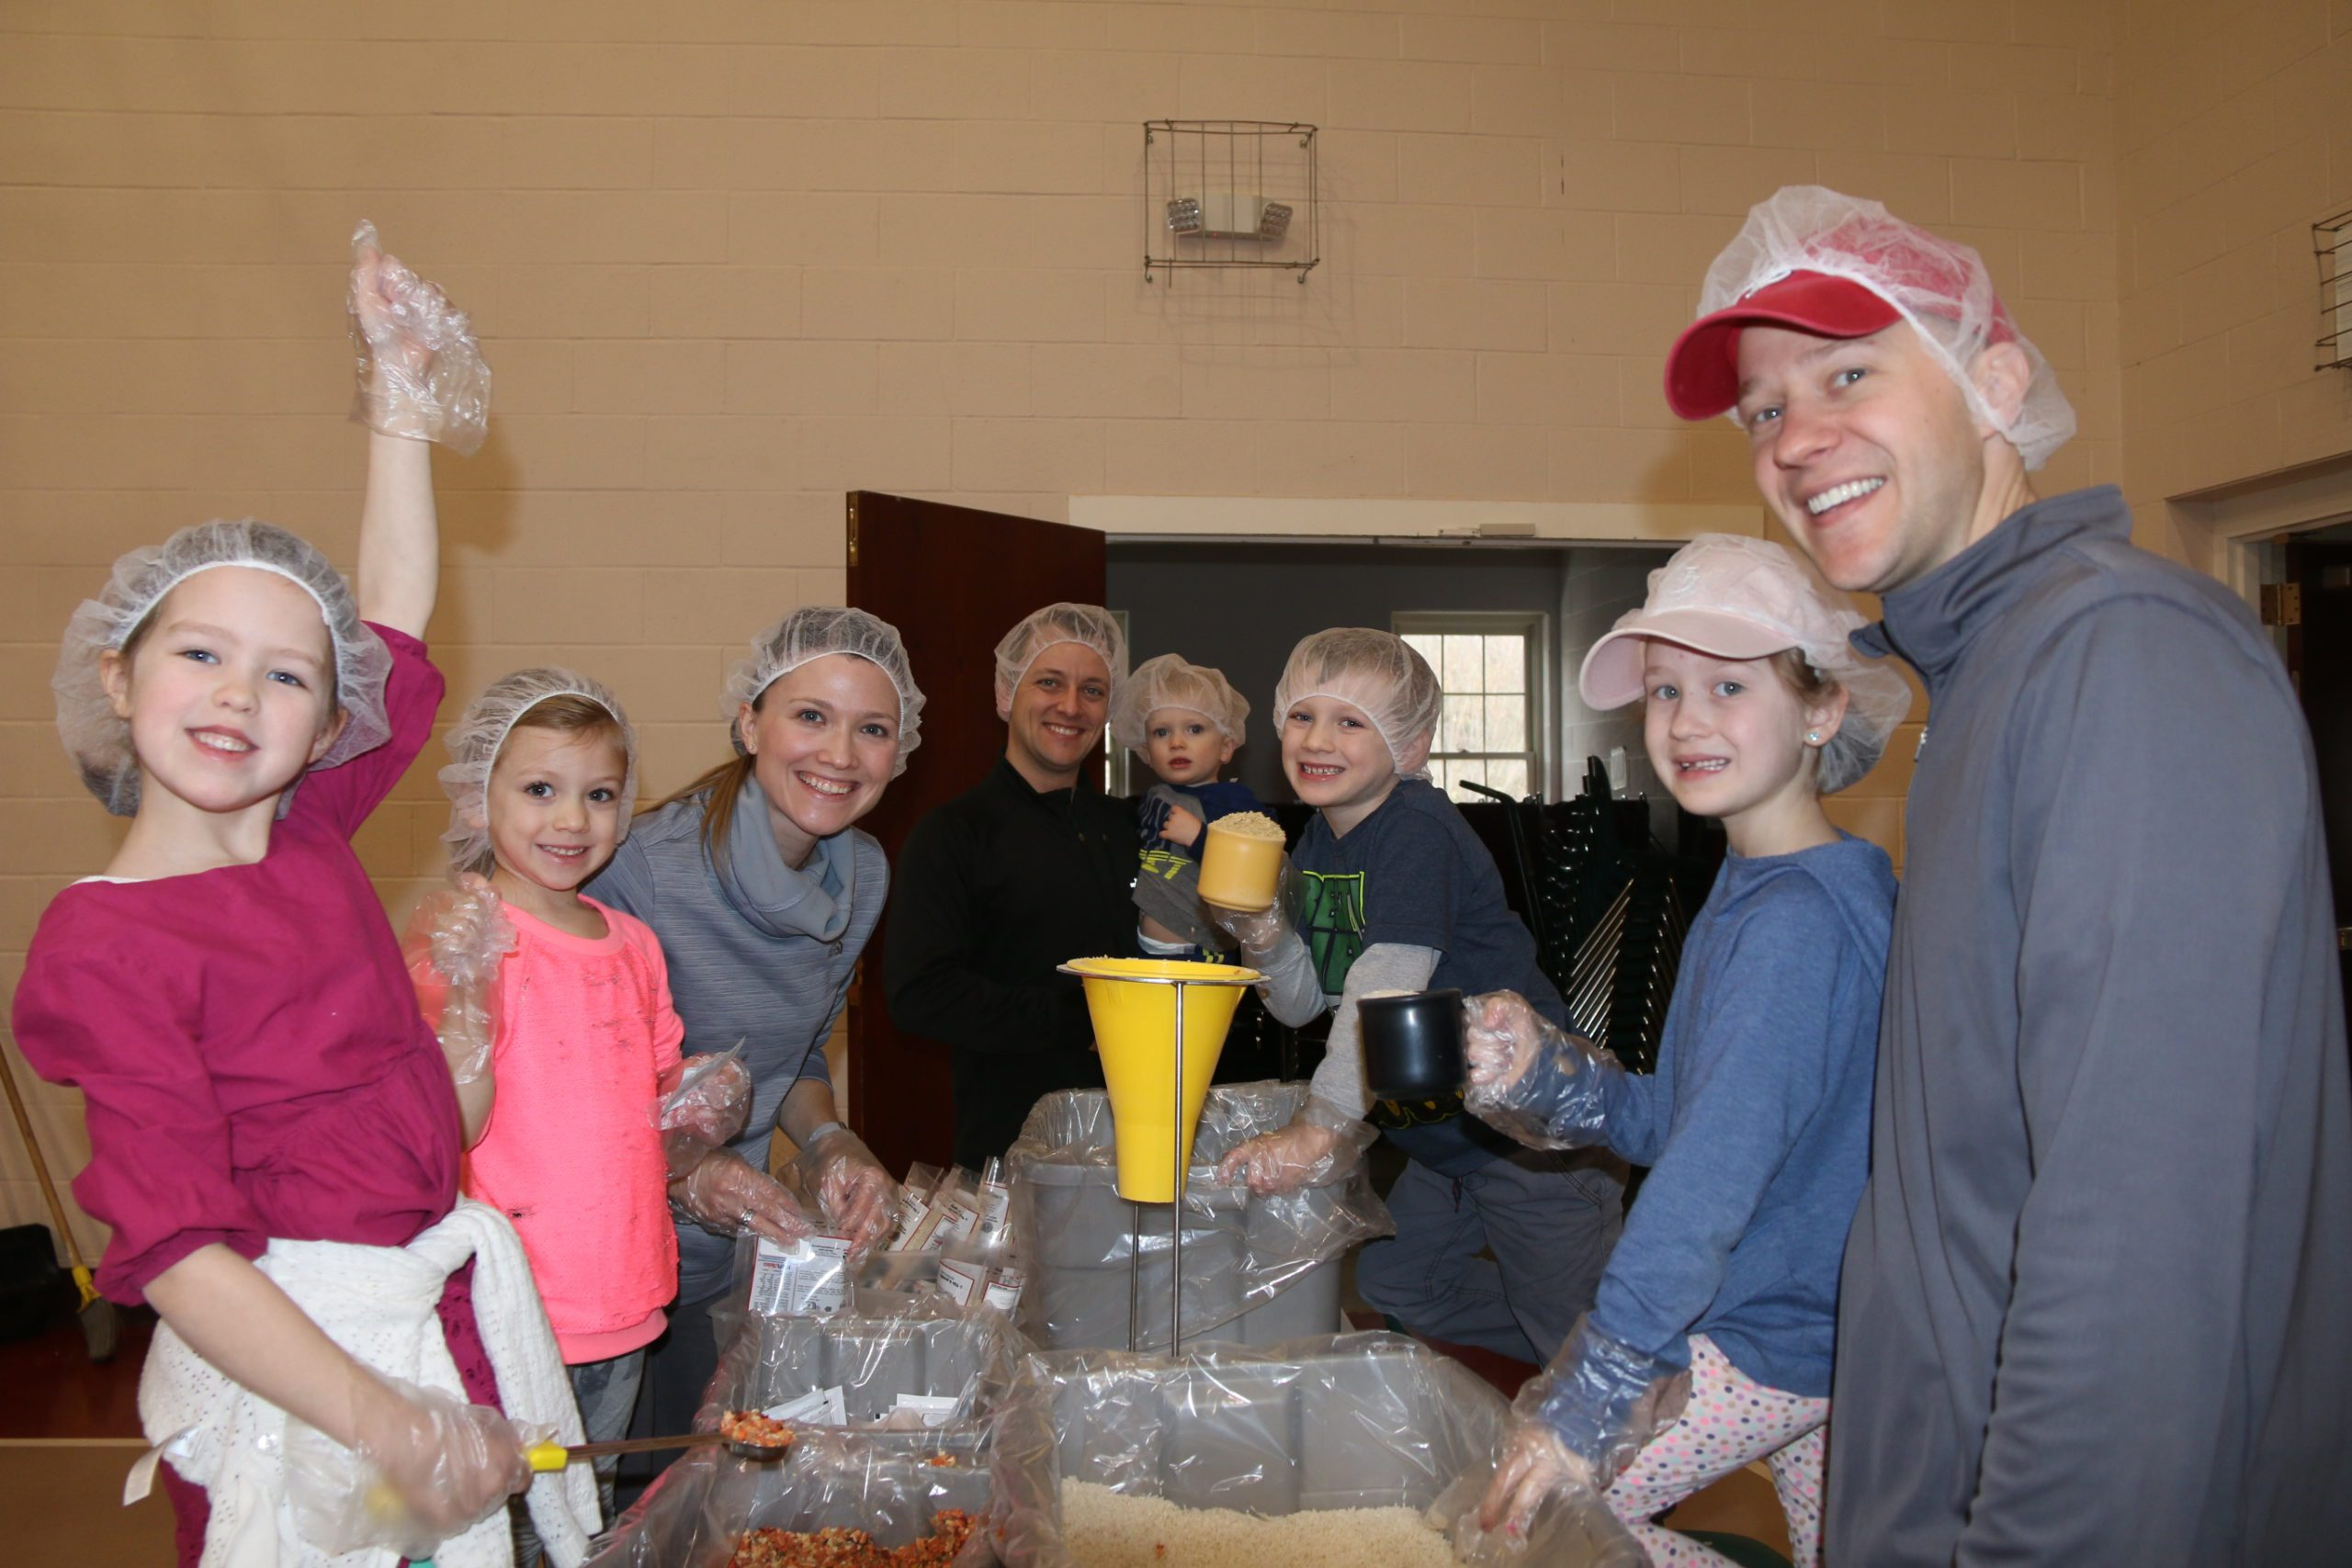 volunteer kids and adults wearing hair nets and packaging food for those in need